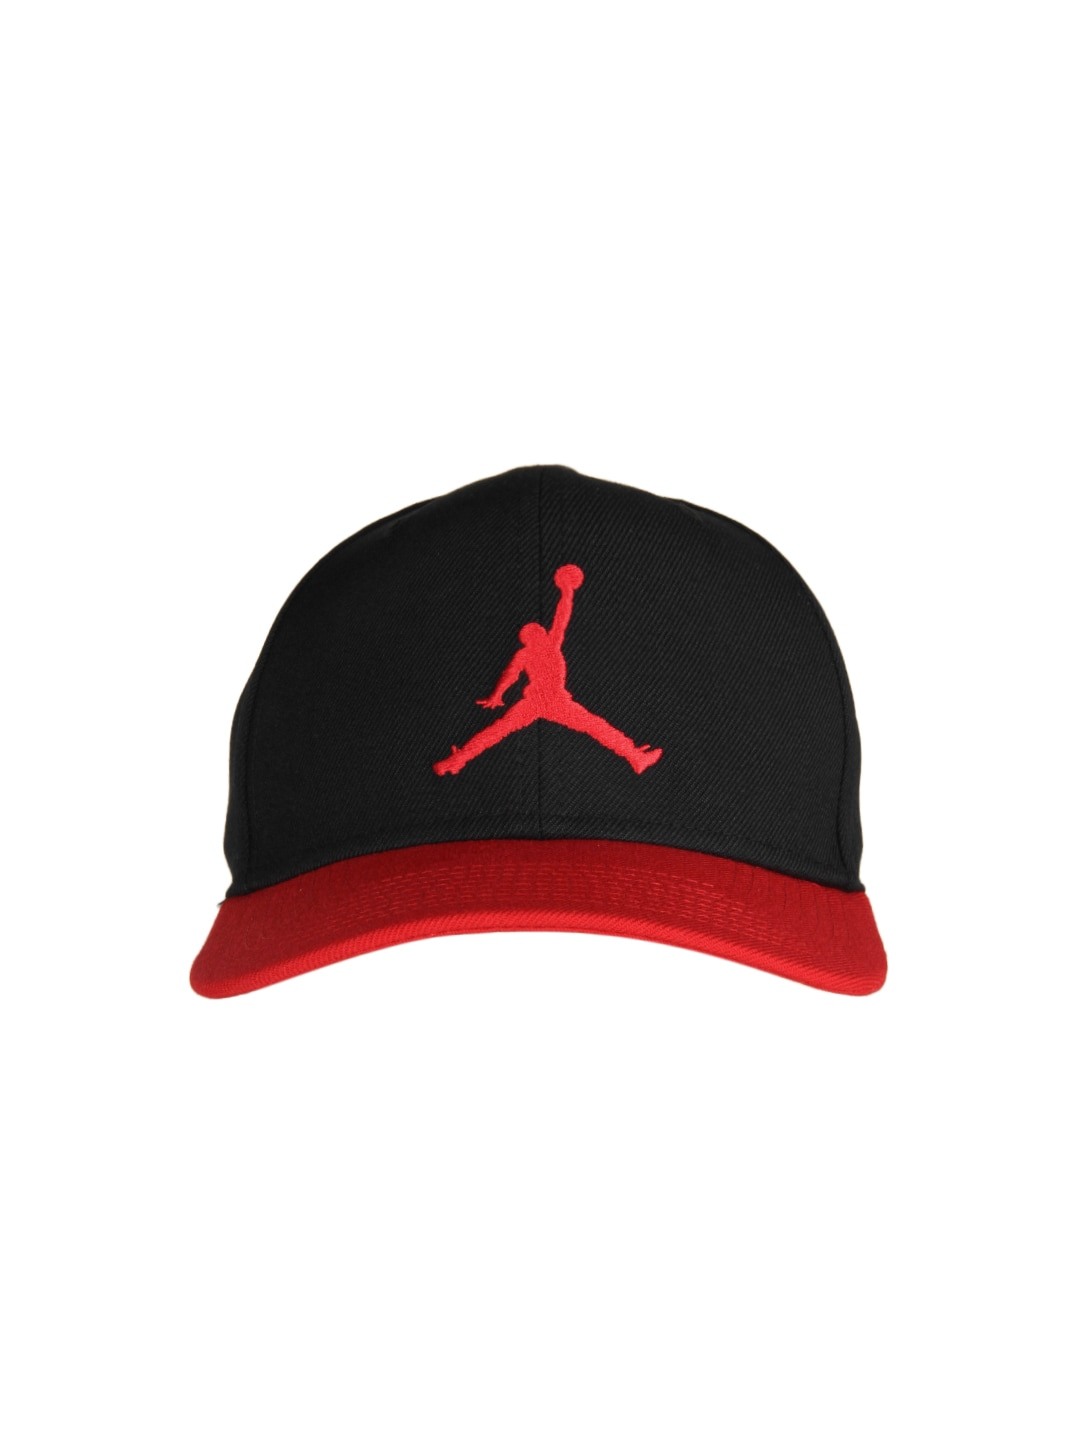 216cfd6a7a8 ... new style nike 513405 012 unisex black jordan true jumpman snapback cap  price in india aab1c